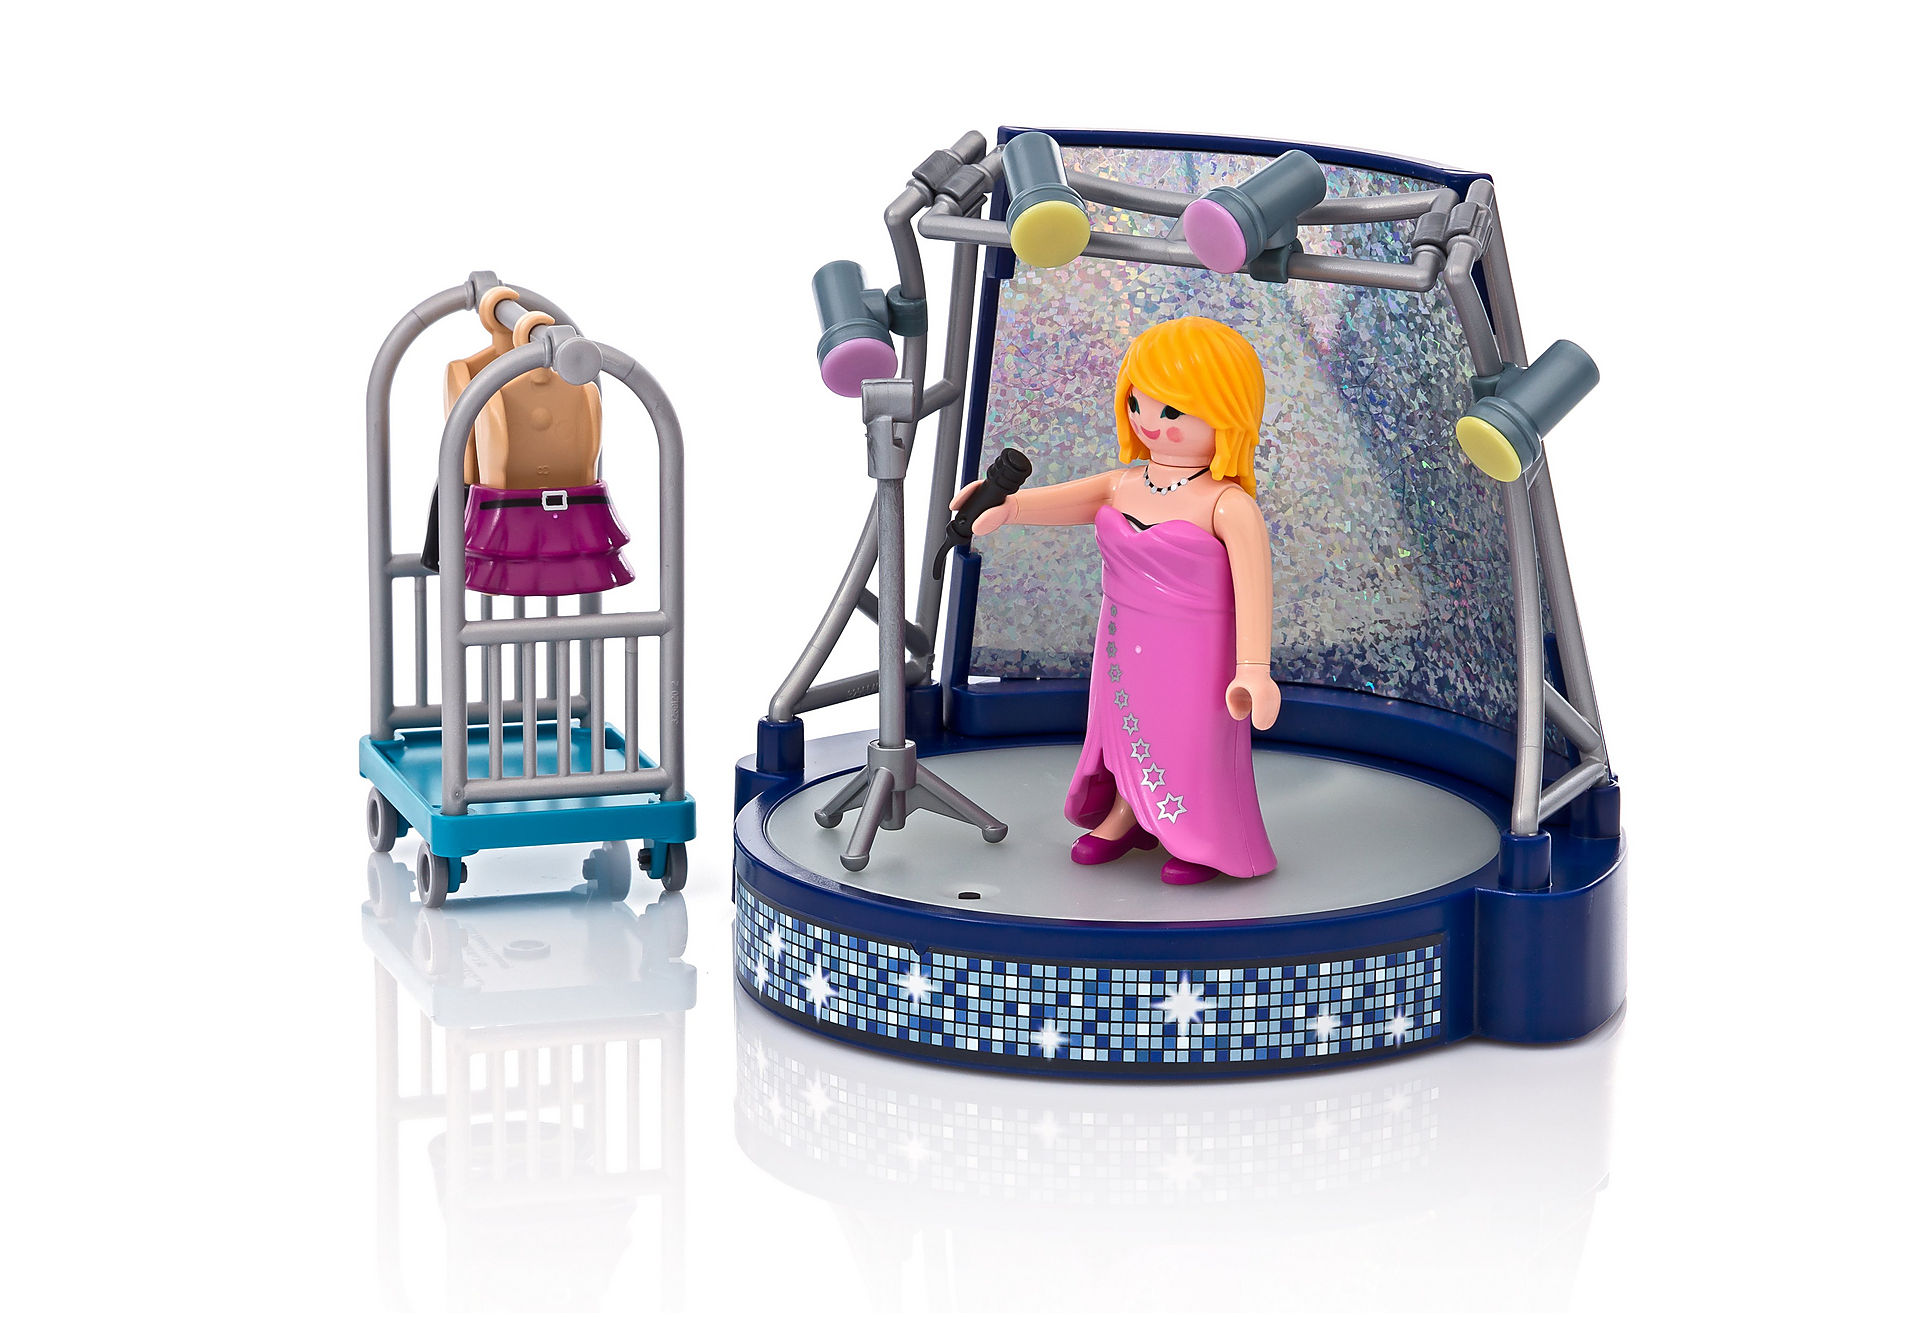 360degree image 5